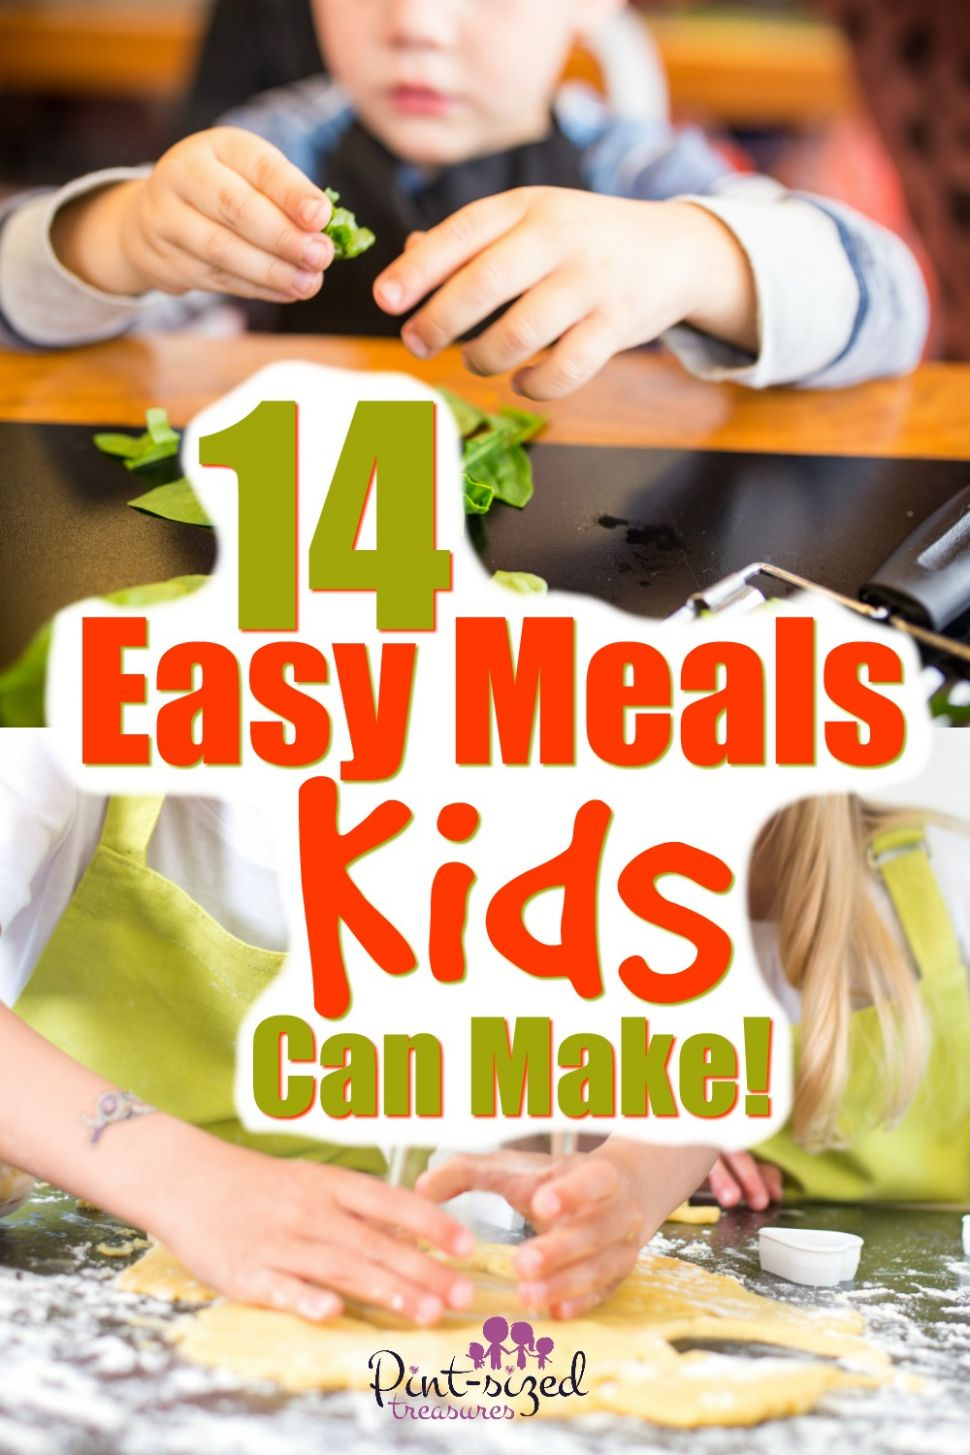 10 Easy Meals Kids Can Make